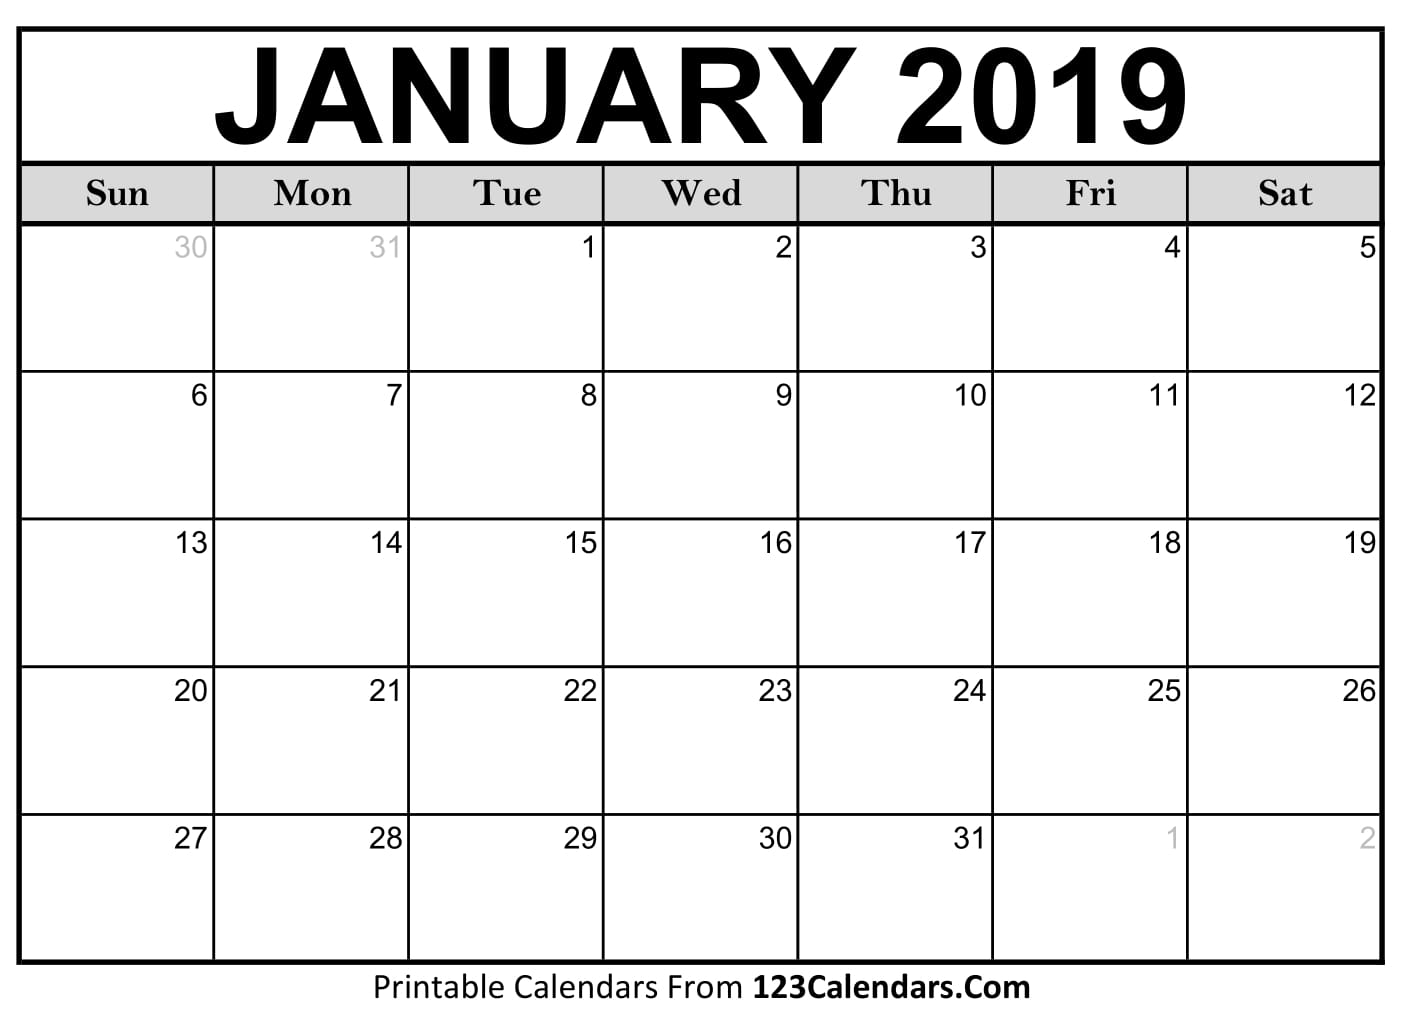 January Calendar 2019 2019 Printable Monthly Calendar Formats (Blank) | Zenodo